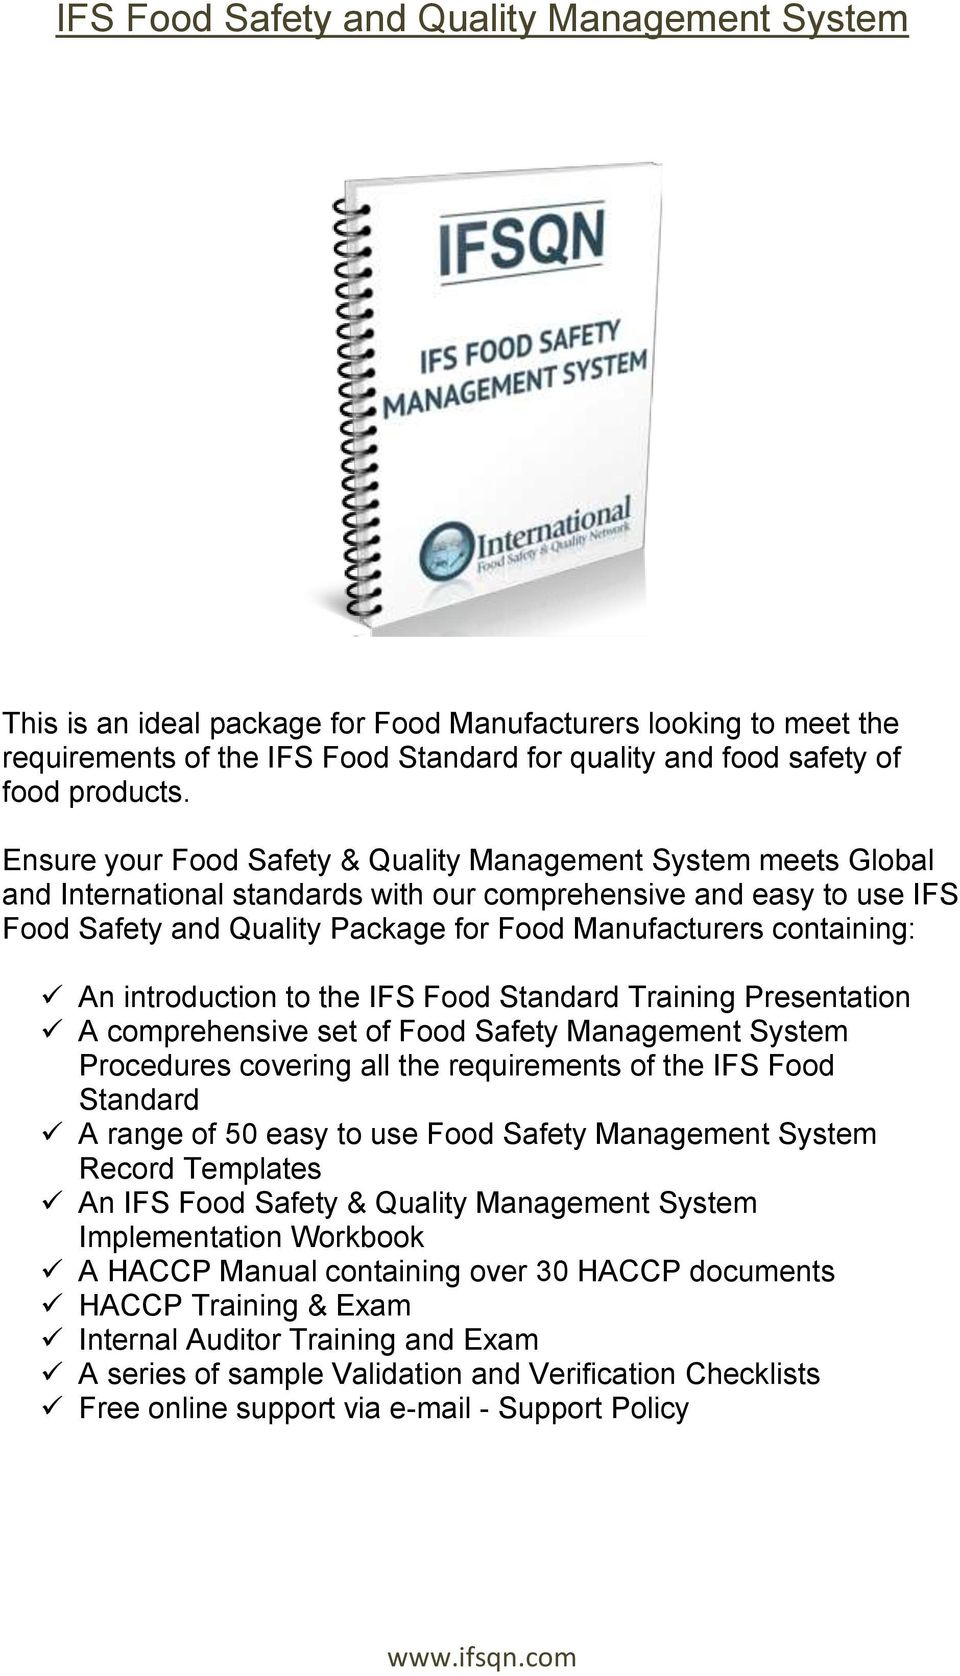 containing: An introduction to the IFS Food Standard Training Presentation A comprehensive set of Food Safety Management System Procedures covering all the requirements of the IFS Food Standard A